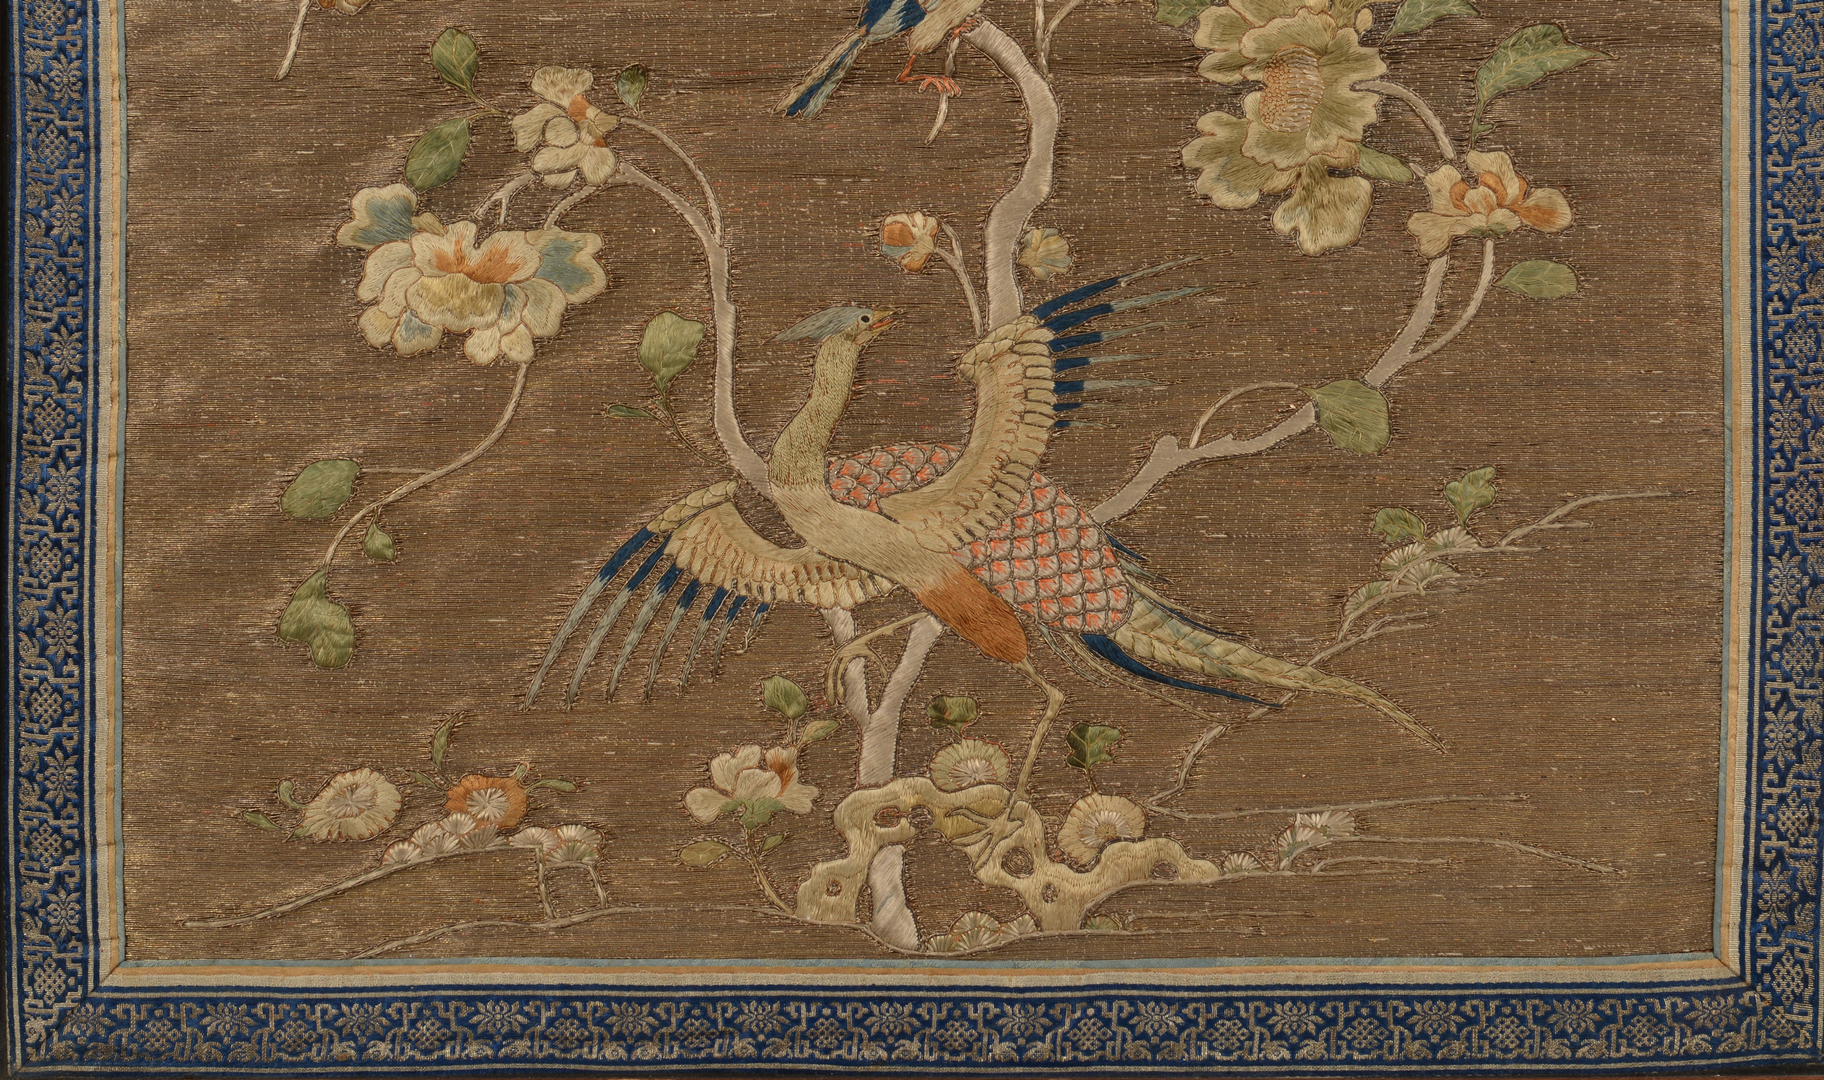 Lot 33 Qing Chinese Silk Embroidery